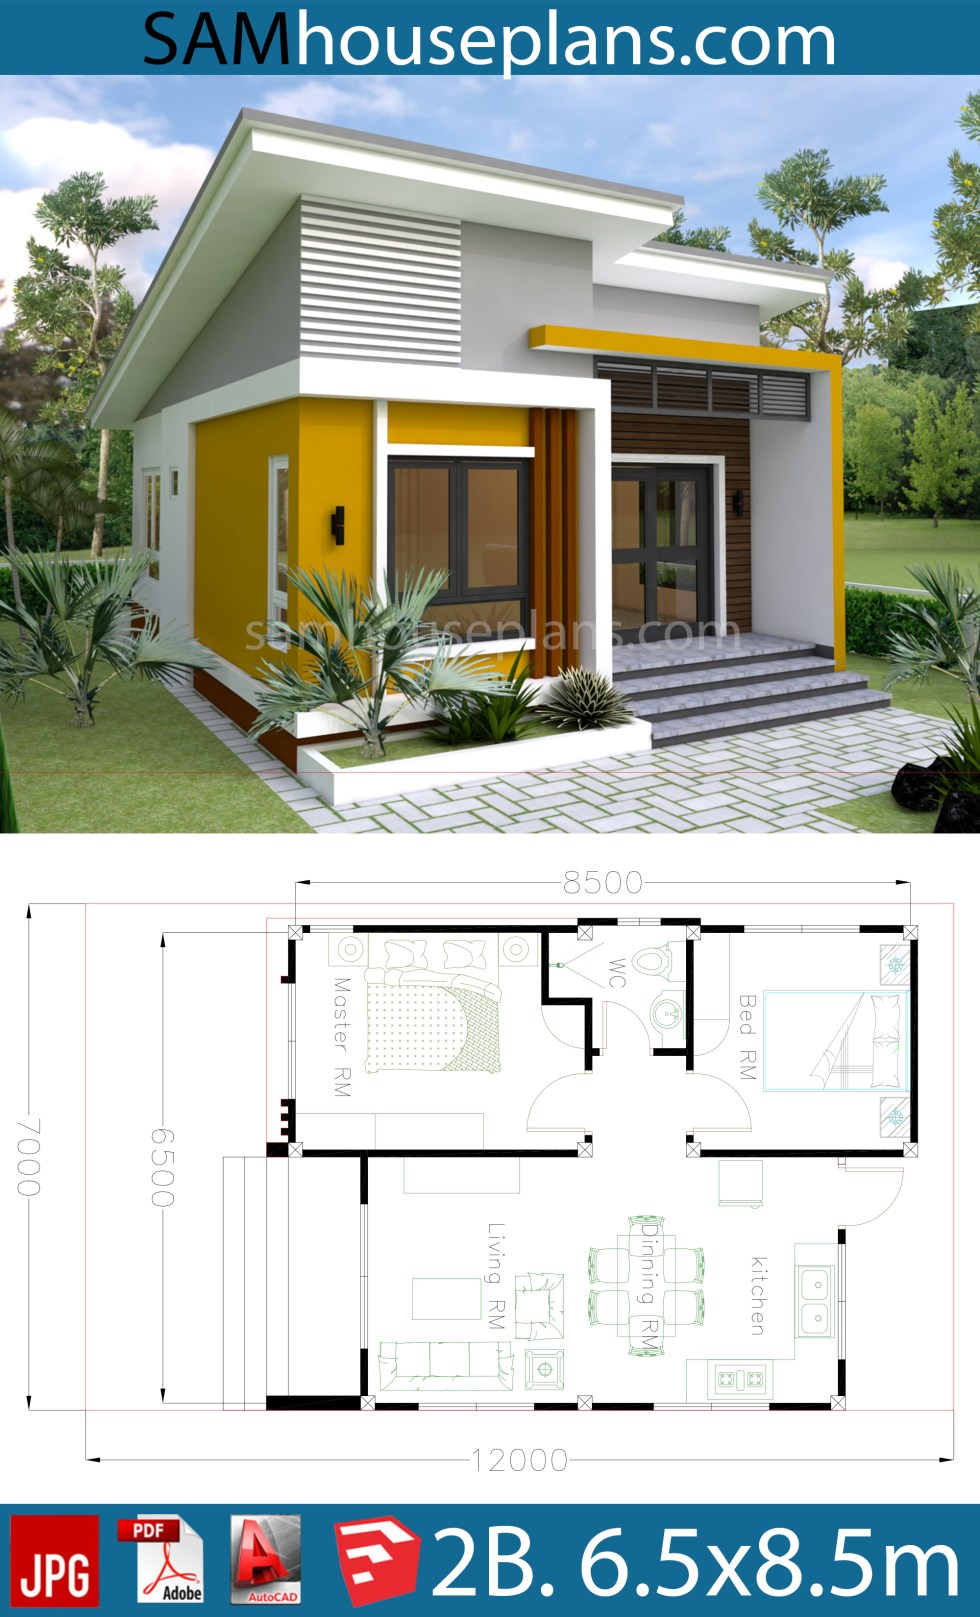 House Plans 6.5x8.5m with 2 Bedrooms - SamHousePlans